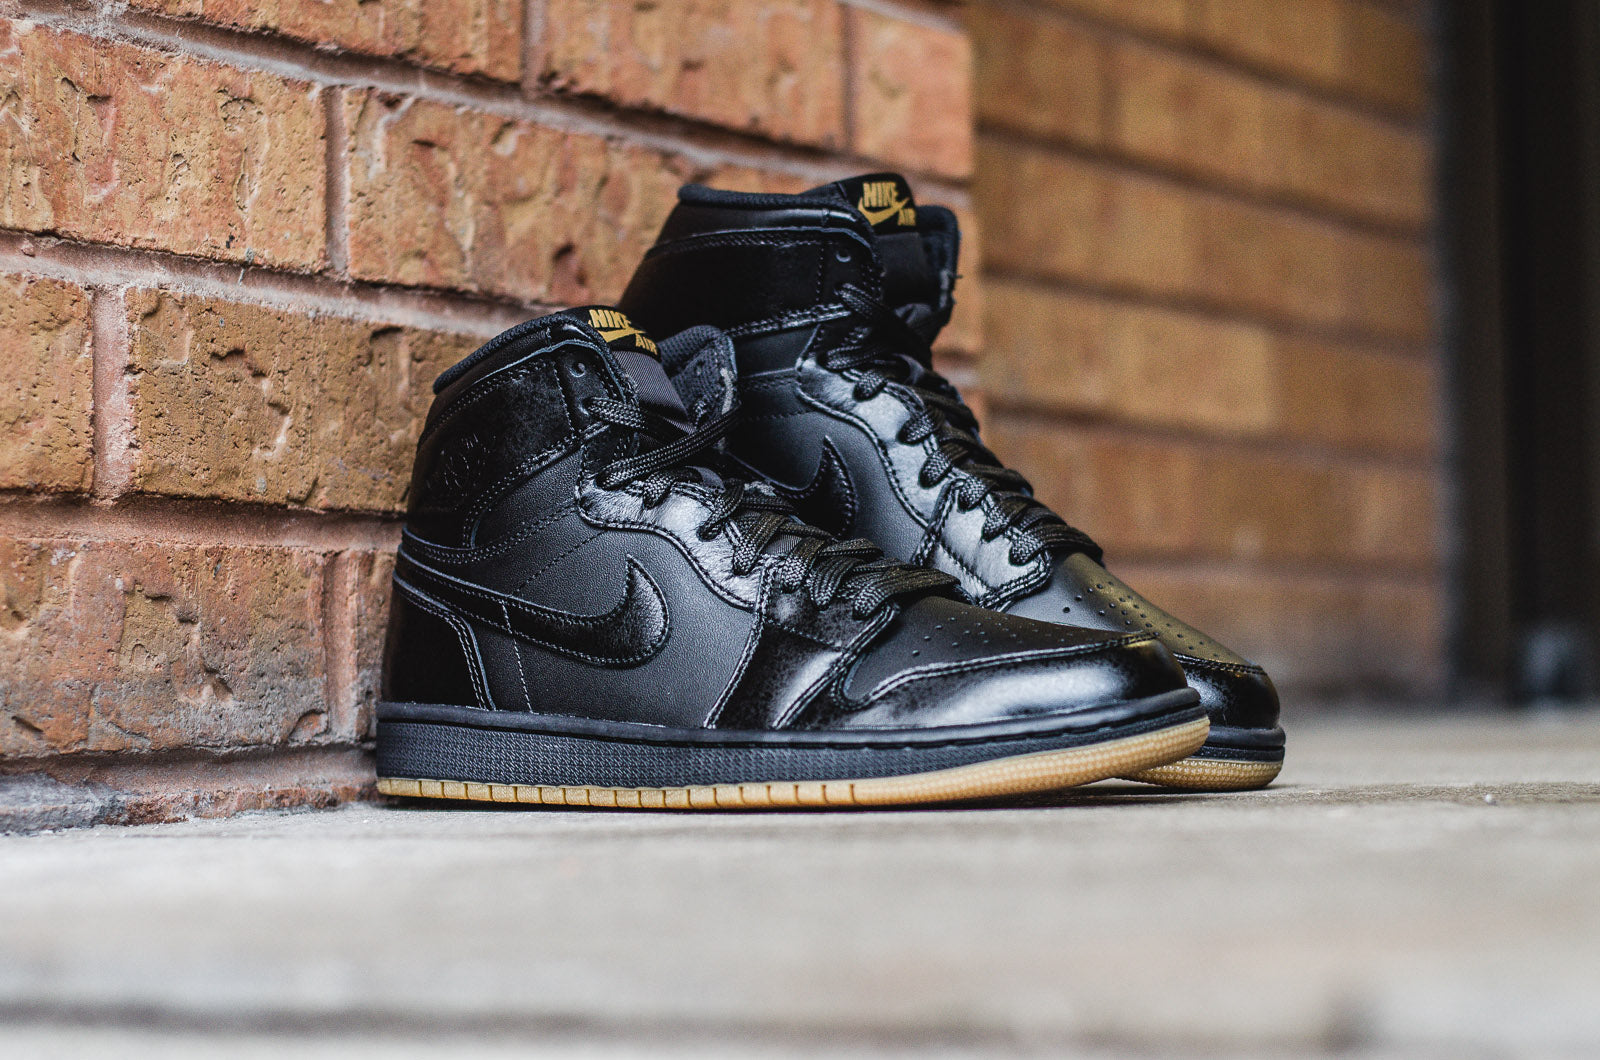 a26acfe079f2cc The time-honored classic Air Jordan 1 Retro High OG gets a monochrome black  leather upper. The Gum Light Brown outsole and Nike Air logo on the tongue  tag ...